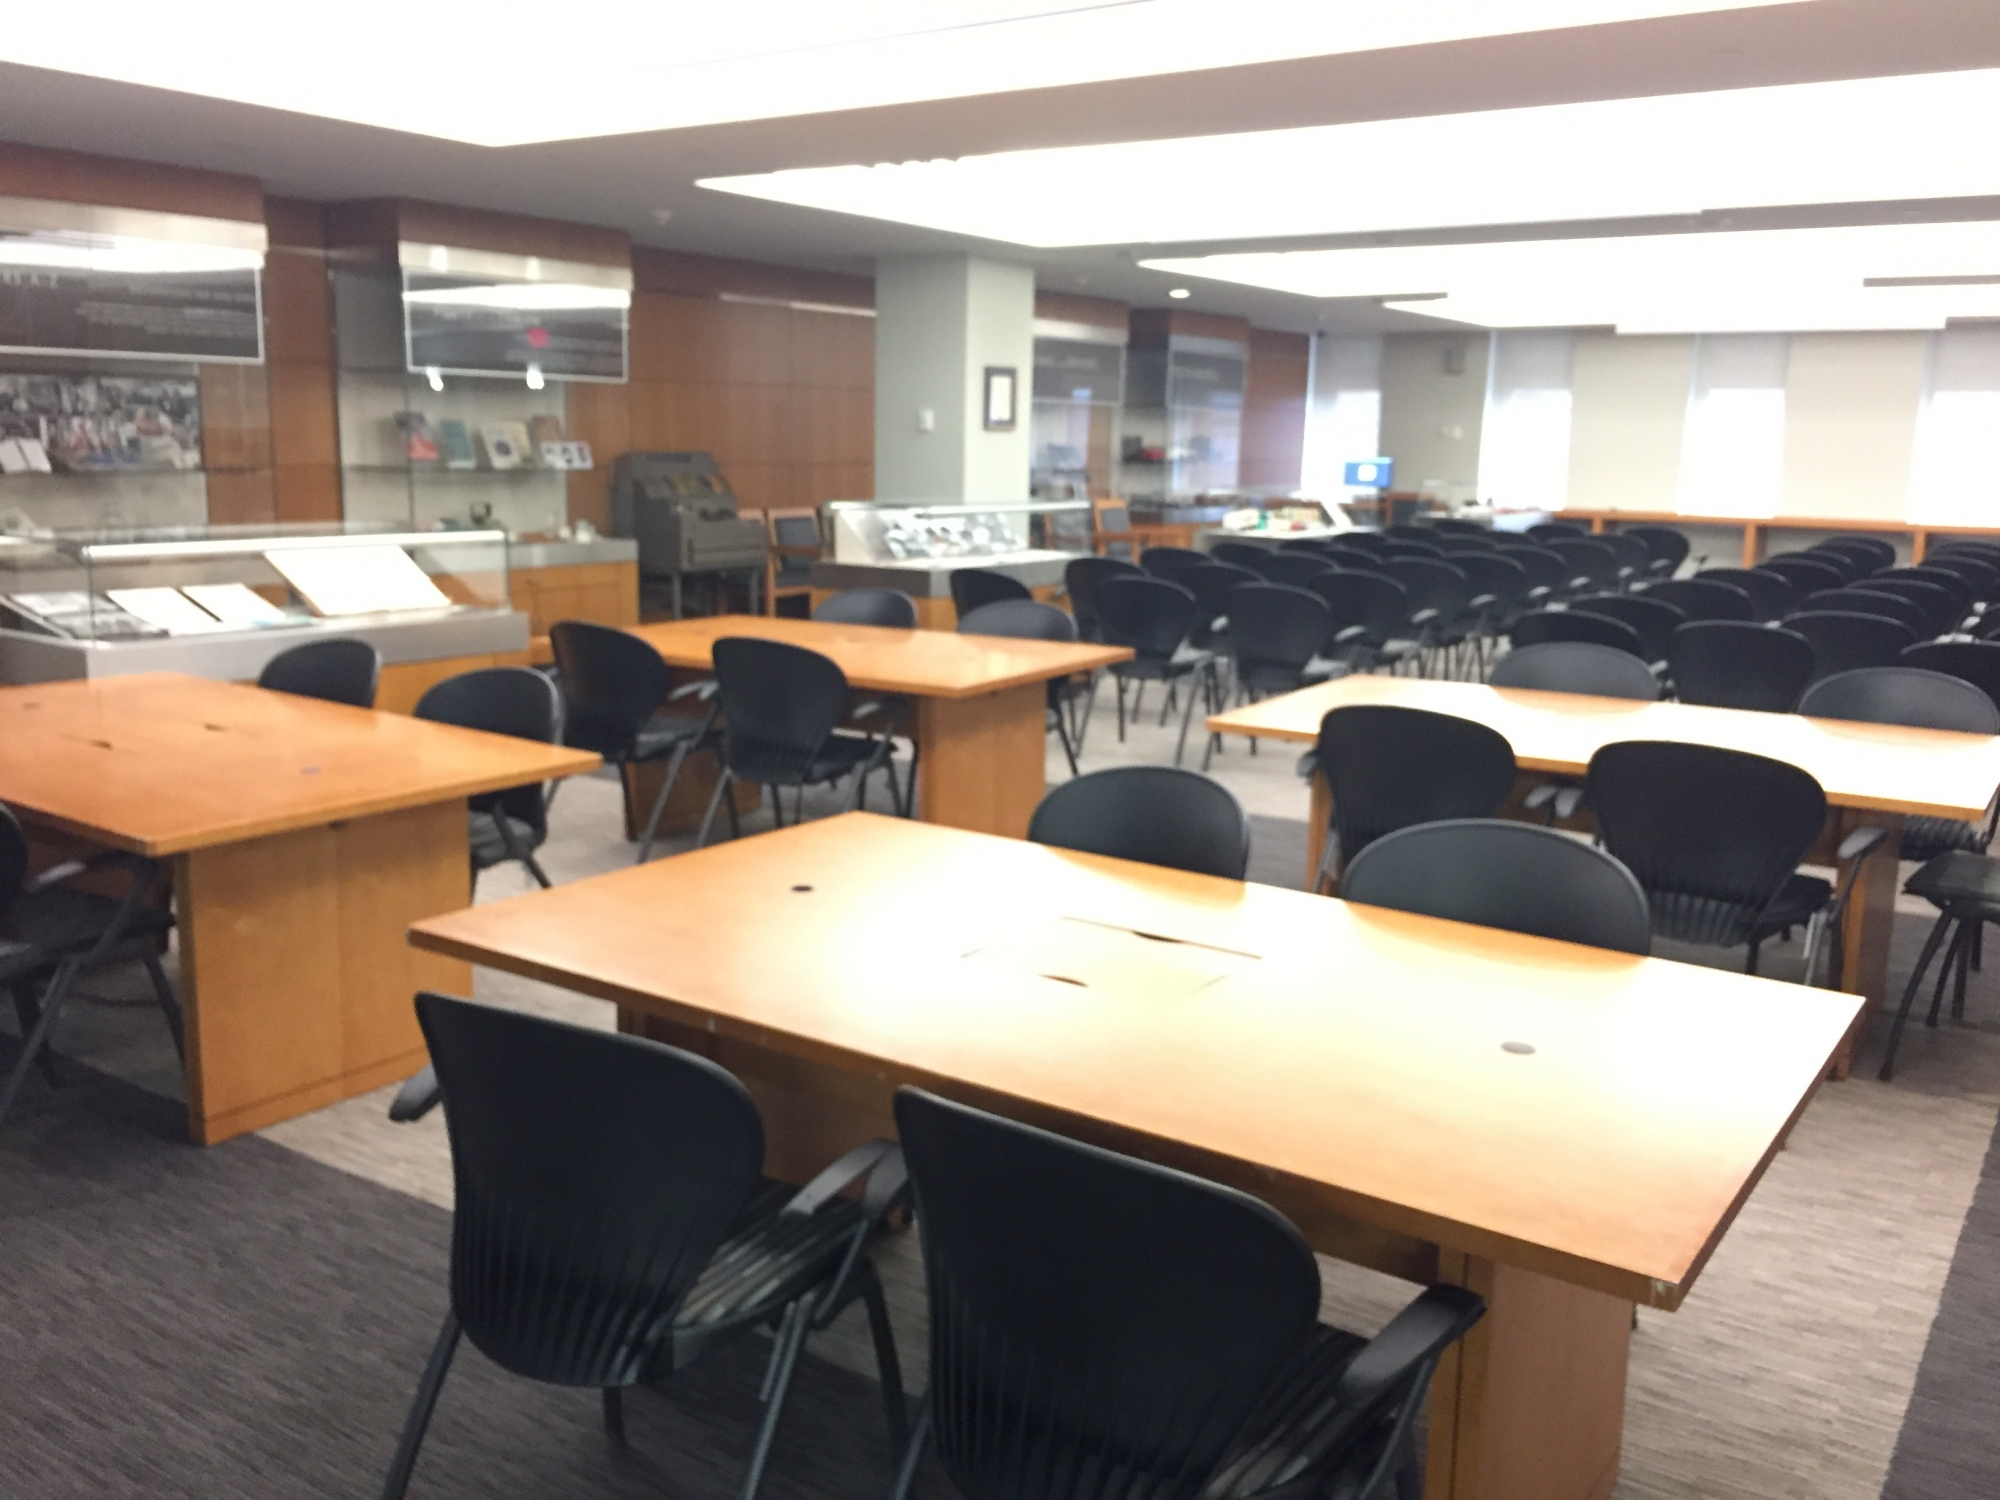 Gelman Library International Brotherhood of Teamsters room 702 view from right back corner